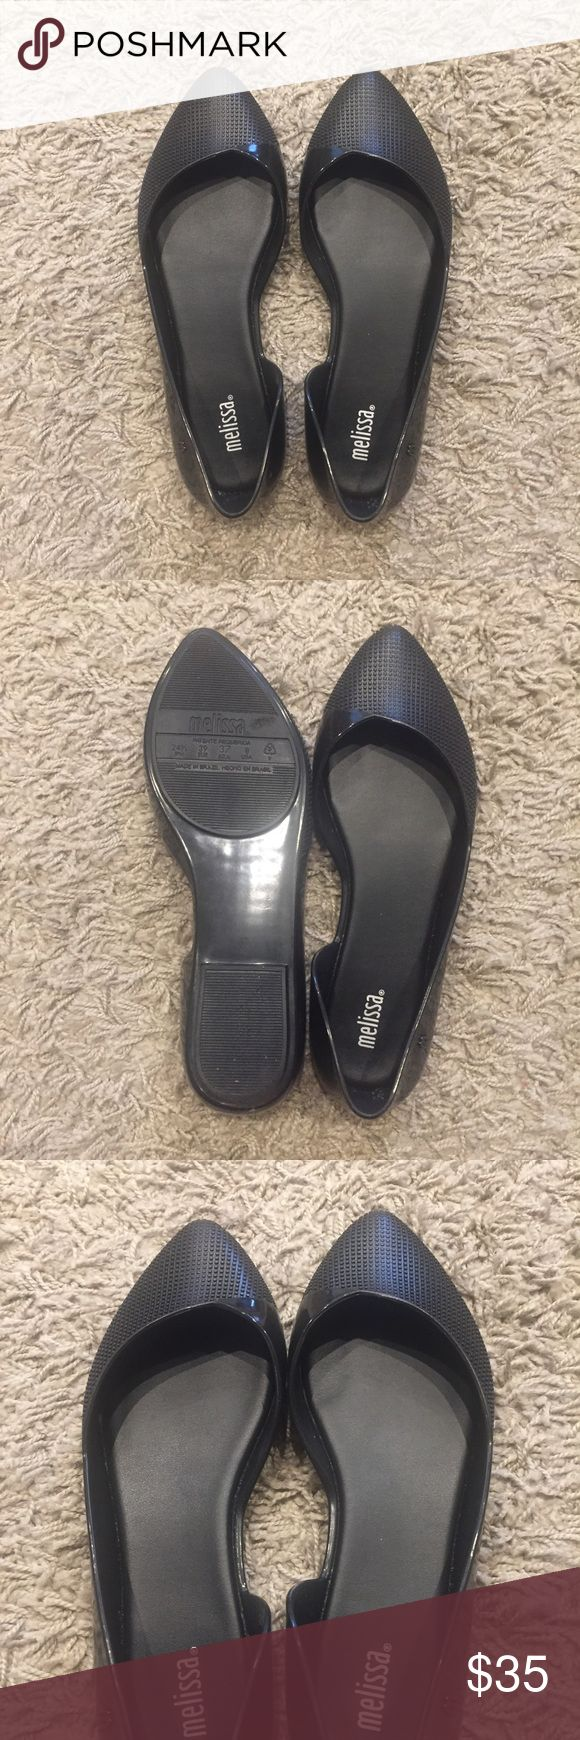 💥Melissa flats 💥 Black melissa flats. Worn once for a few hours. Almost brand new Melissa Shoes Flats & Loafers